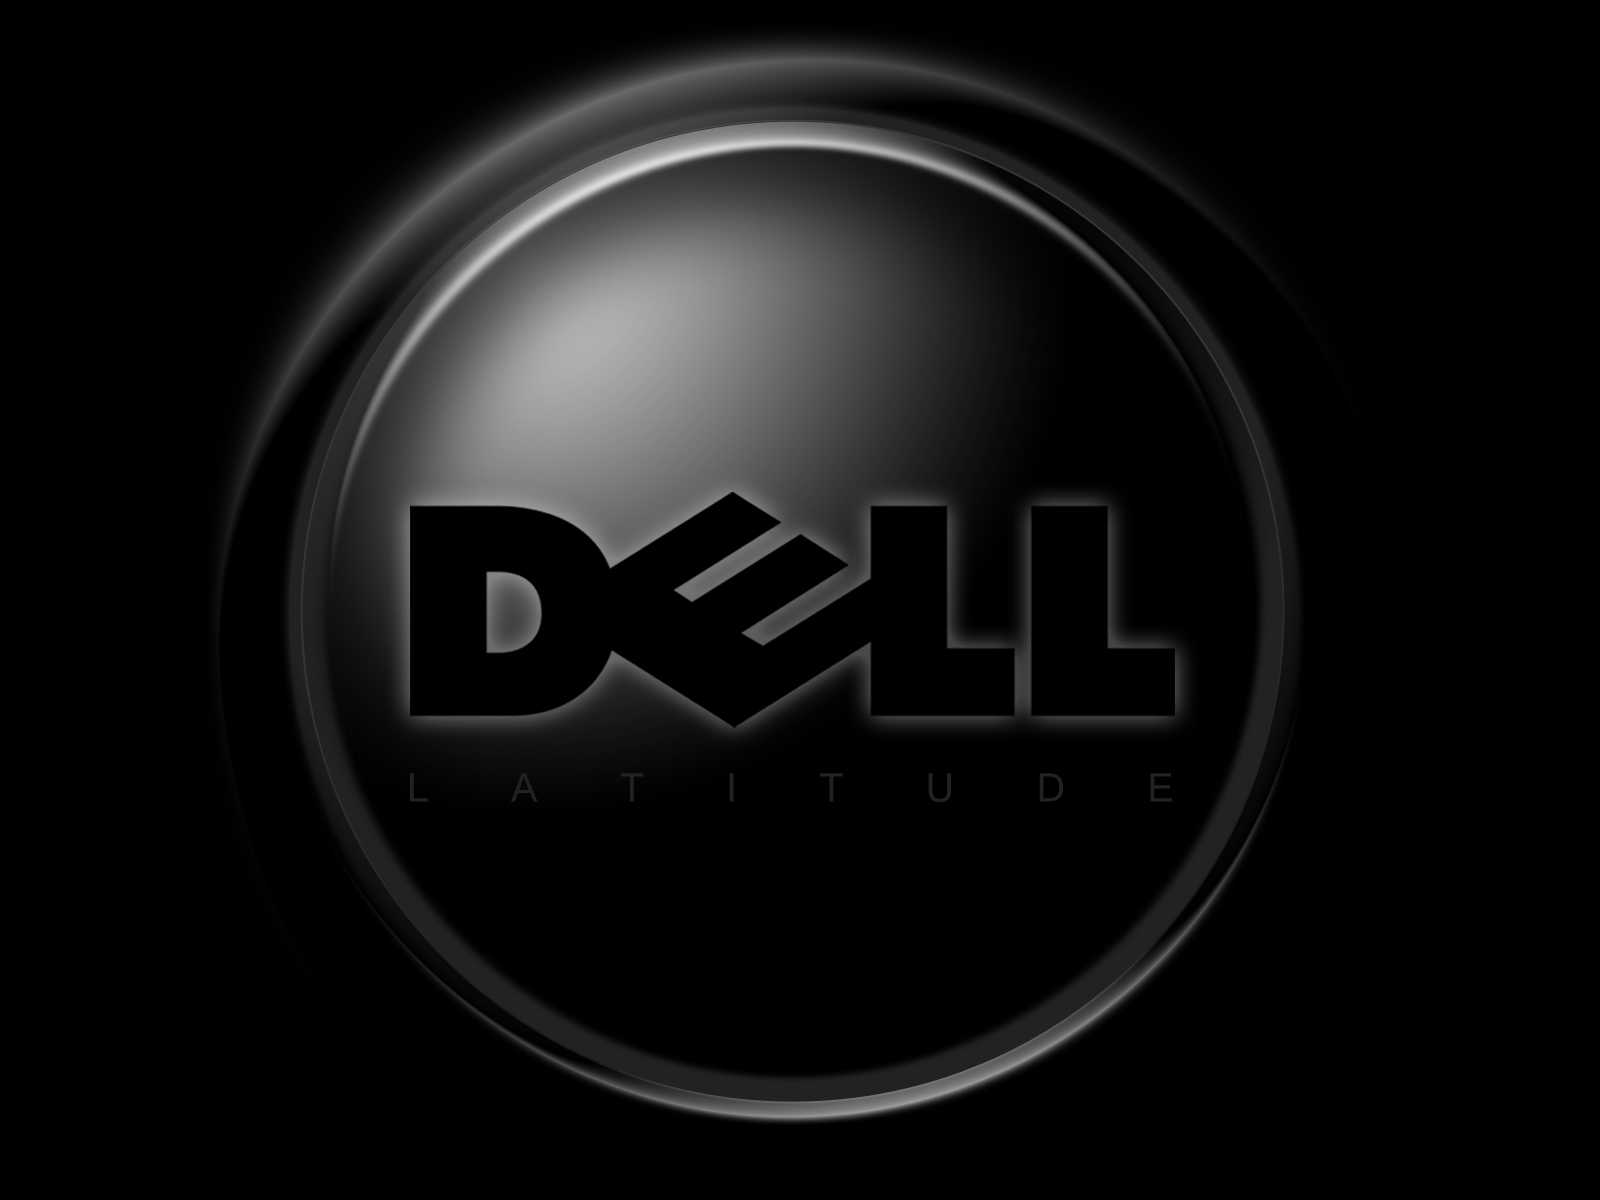 dell wallpaper wallpapers